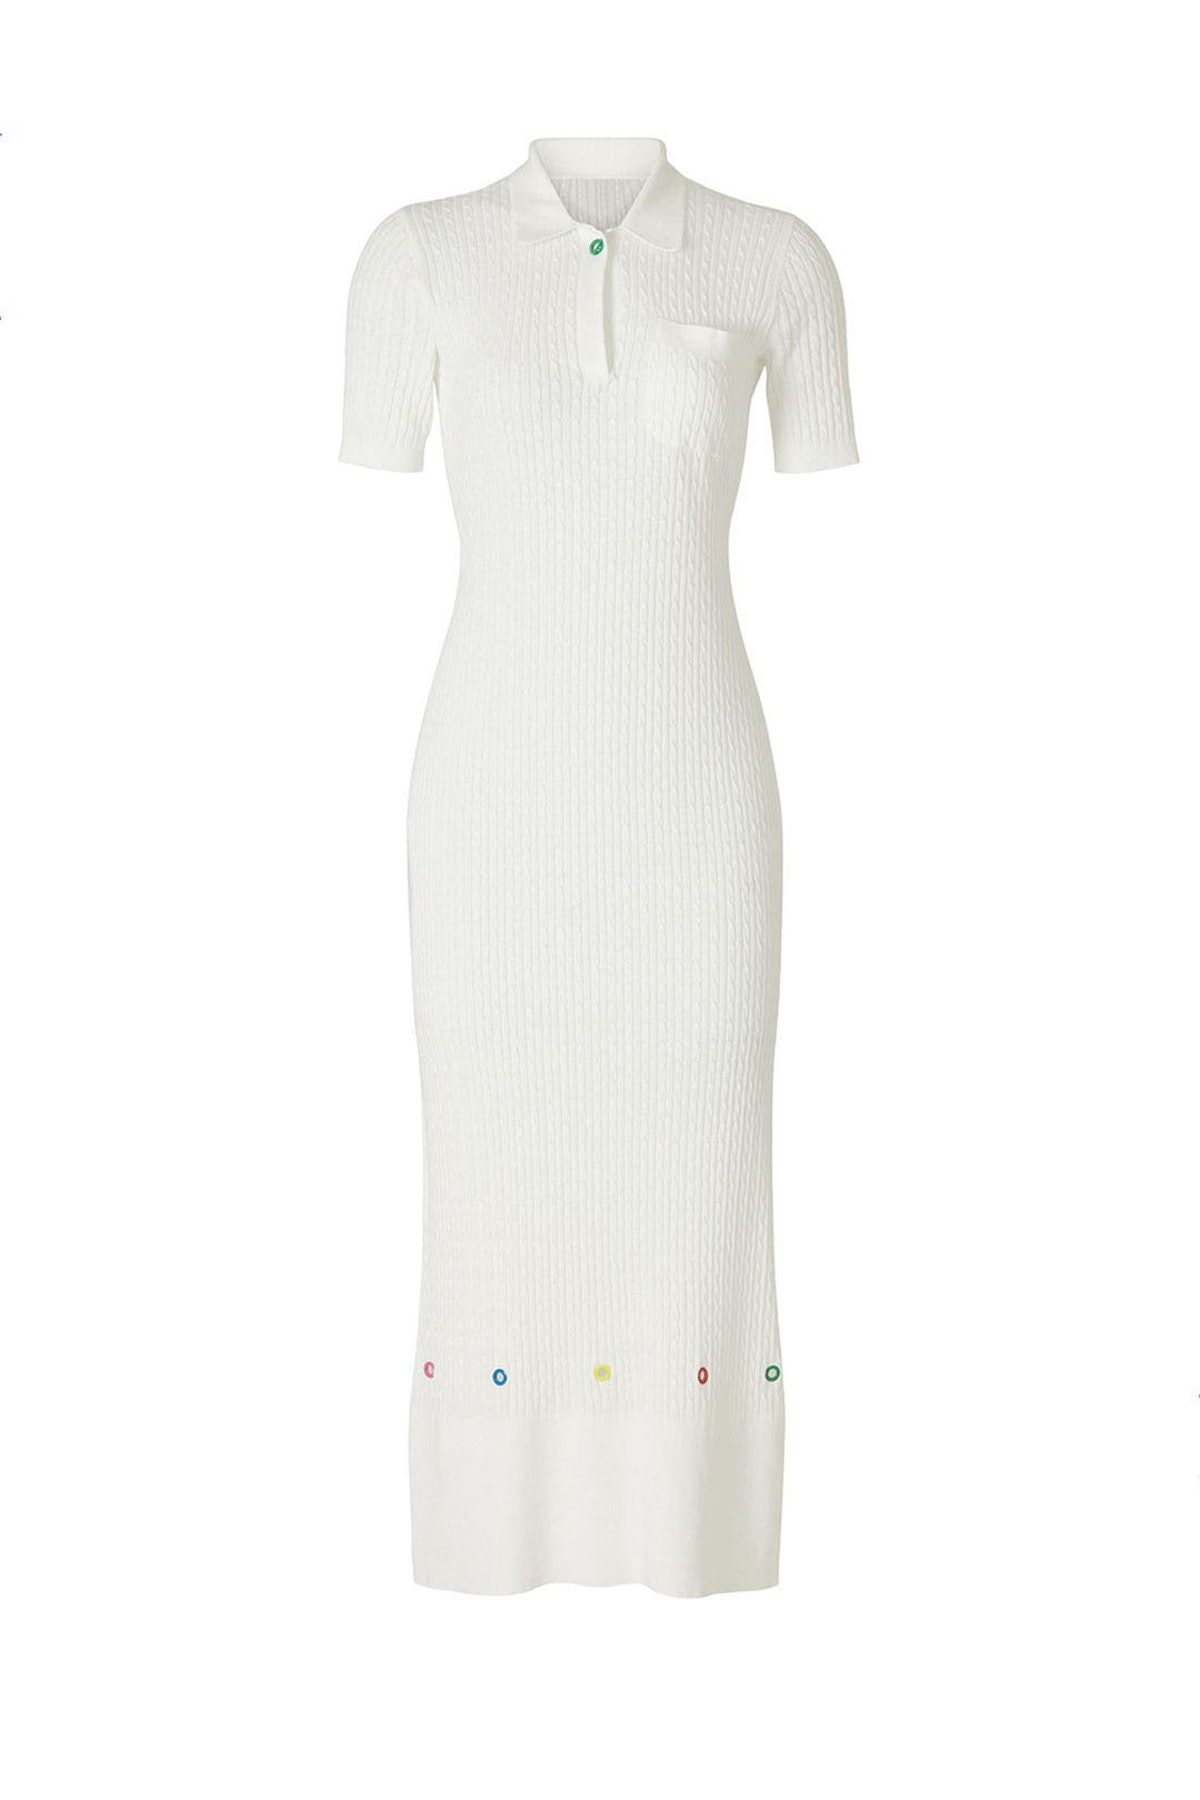 White Cecily knit dress from STAUD, available to shop or rent via Rent The Runway.